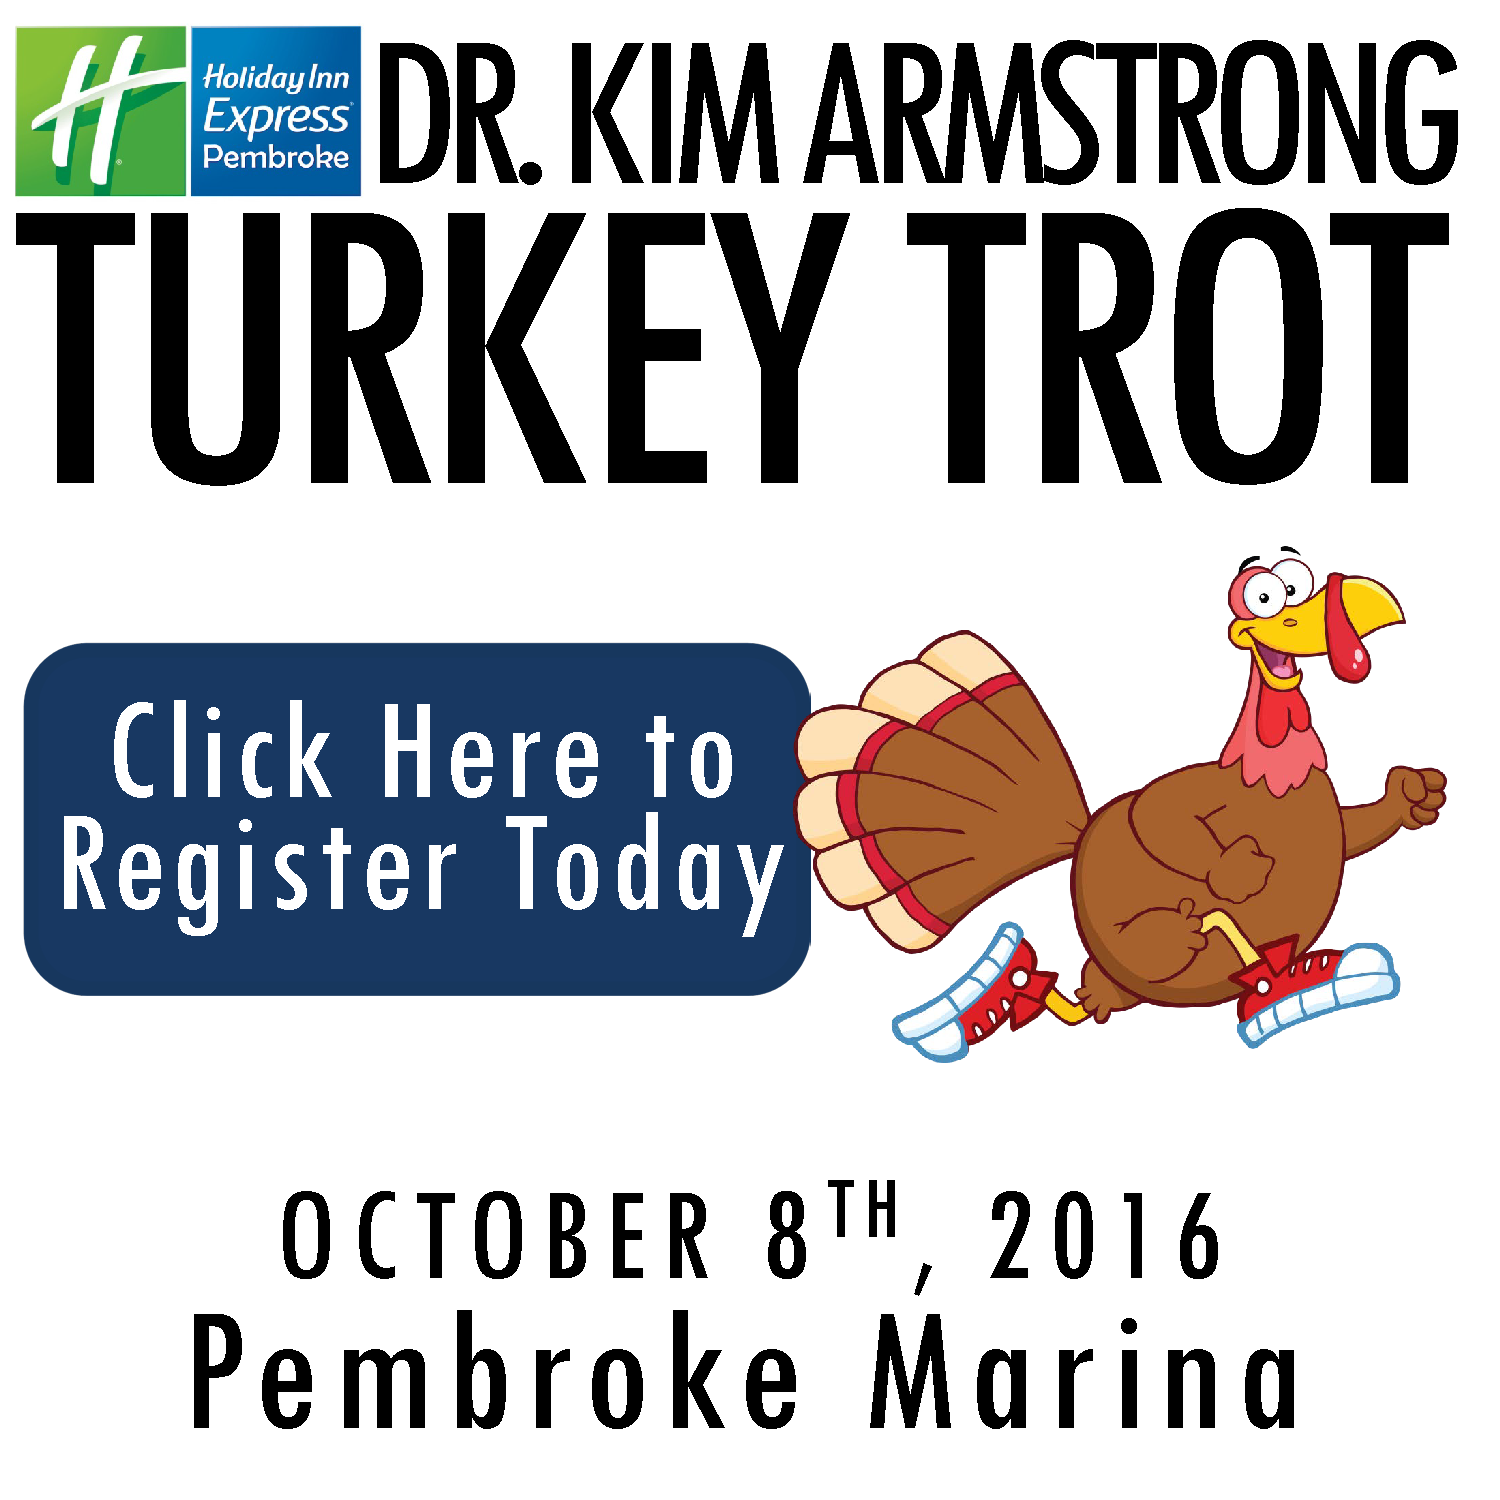 Register today for the 2016 Turkey Trot!